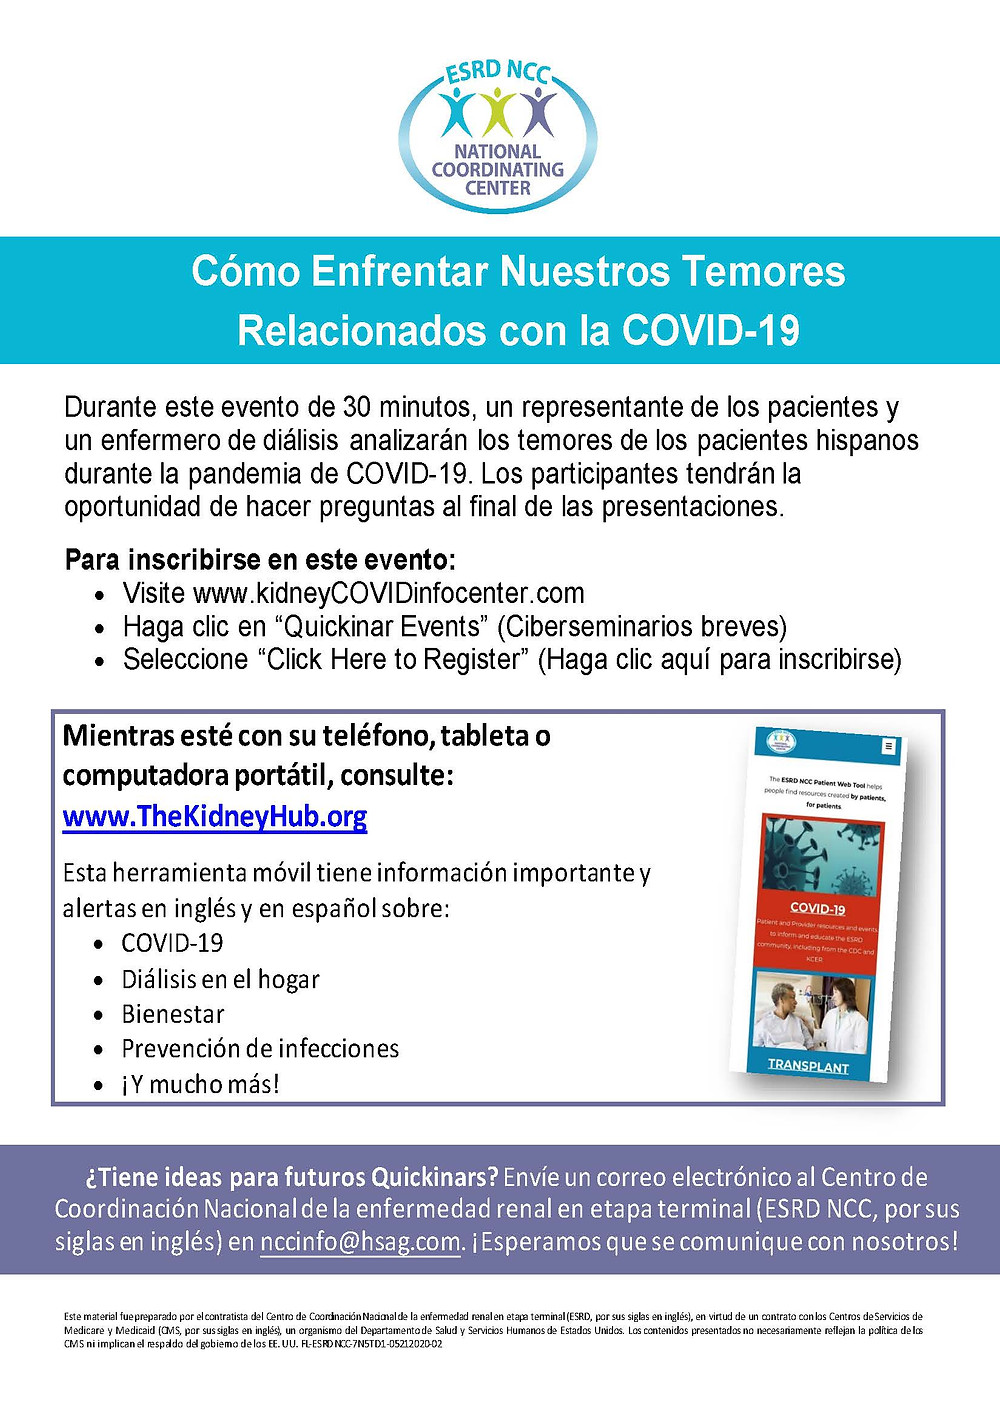 Flyer about Spanish Webinar happening on Tuesday May 26 at 5PM and Wednesday May 27 at 5PM